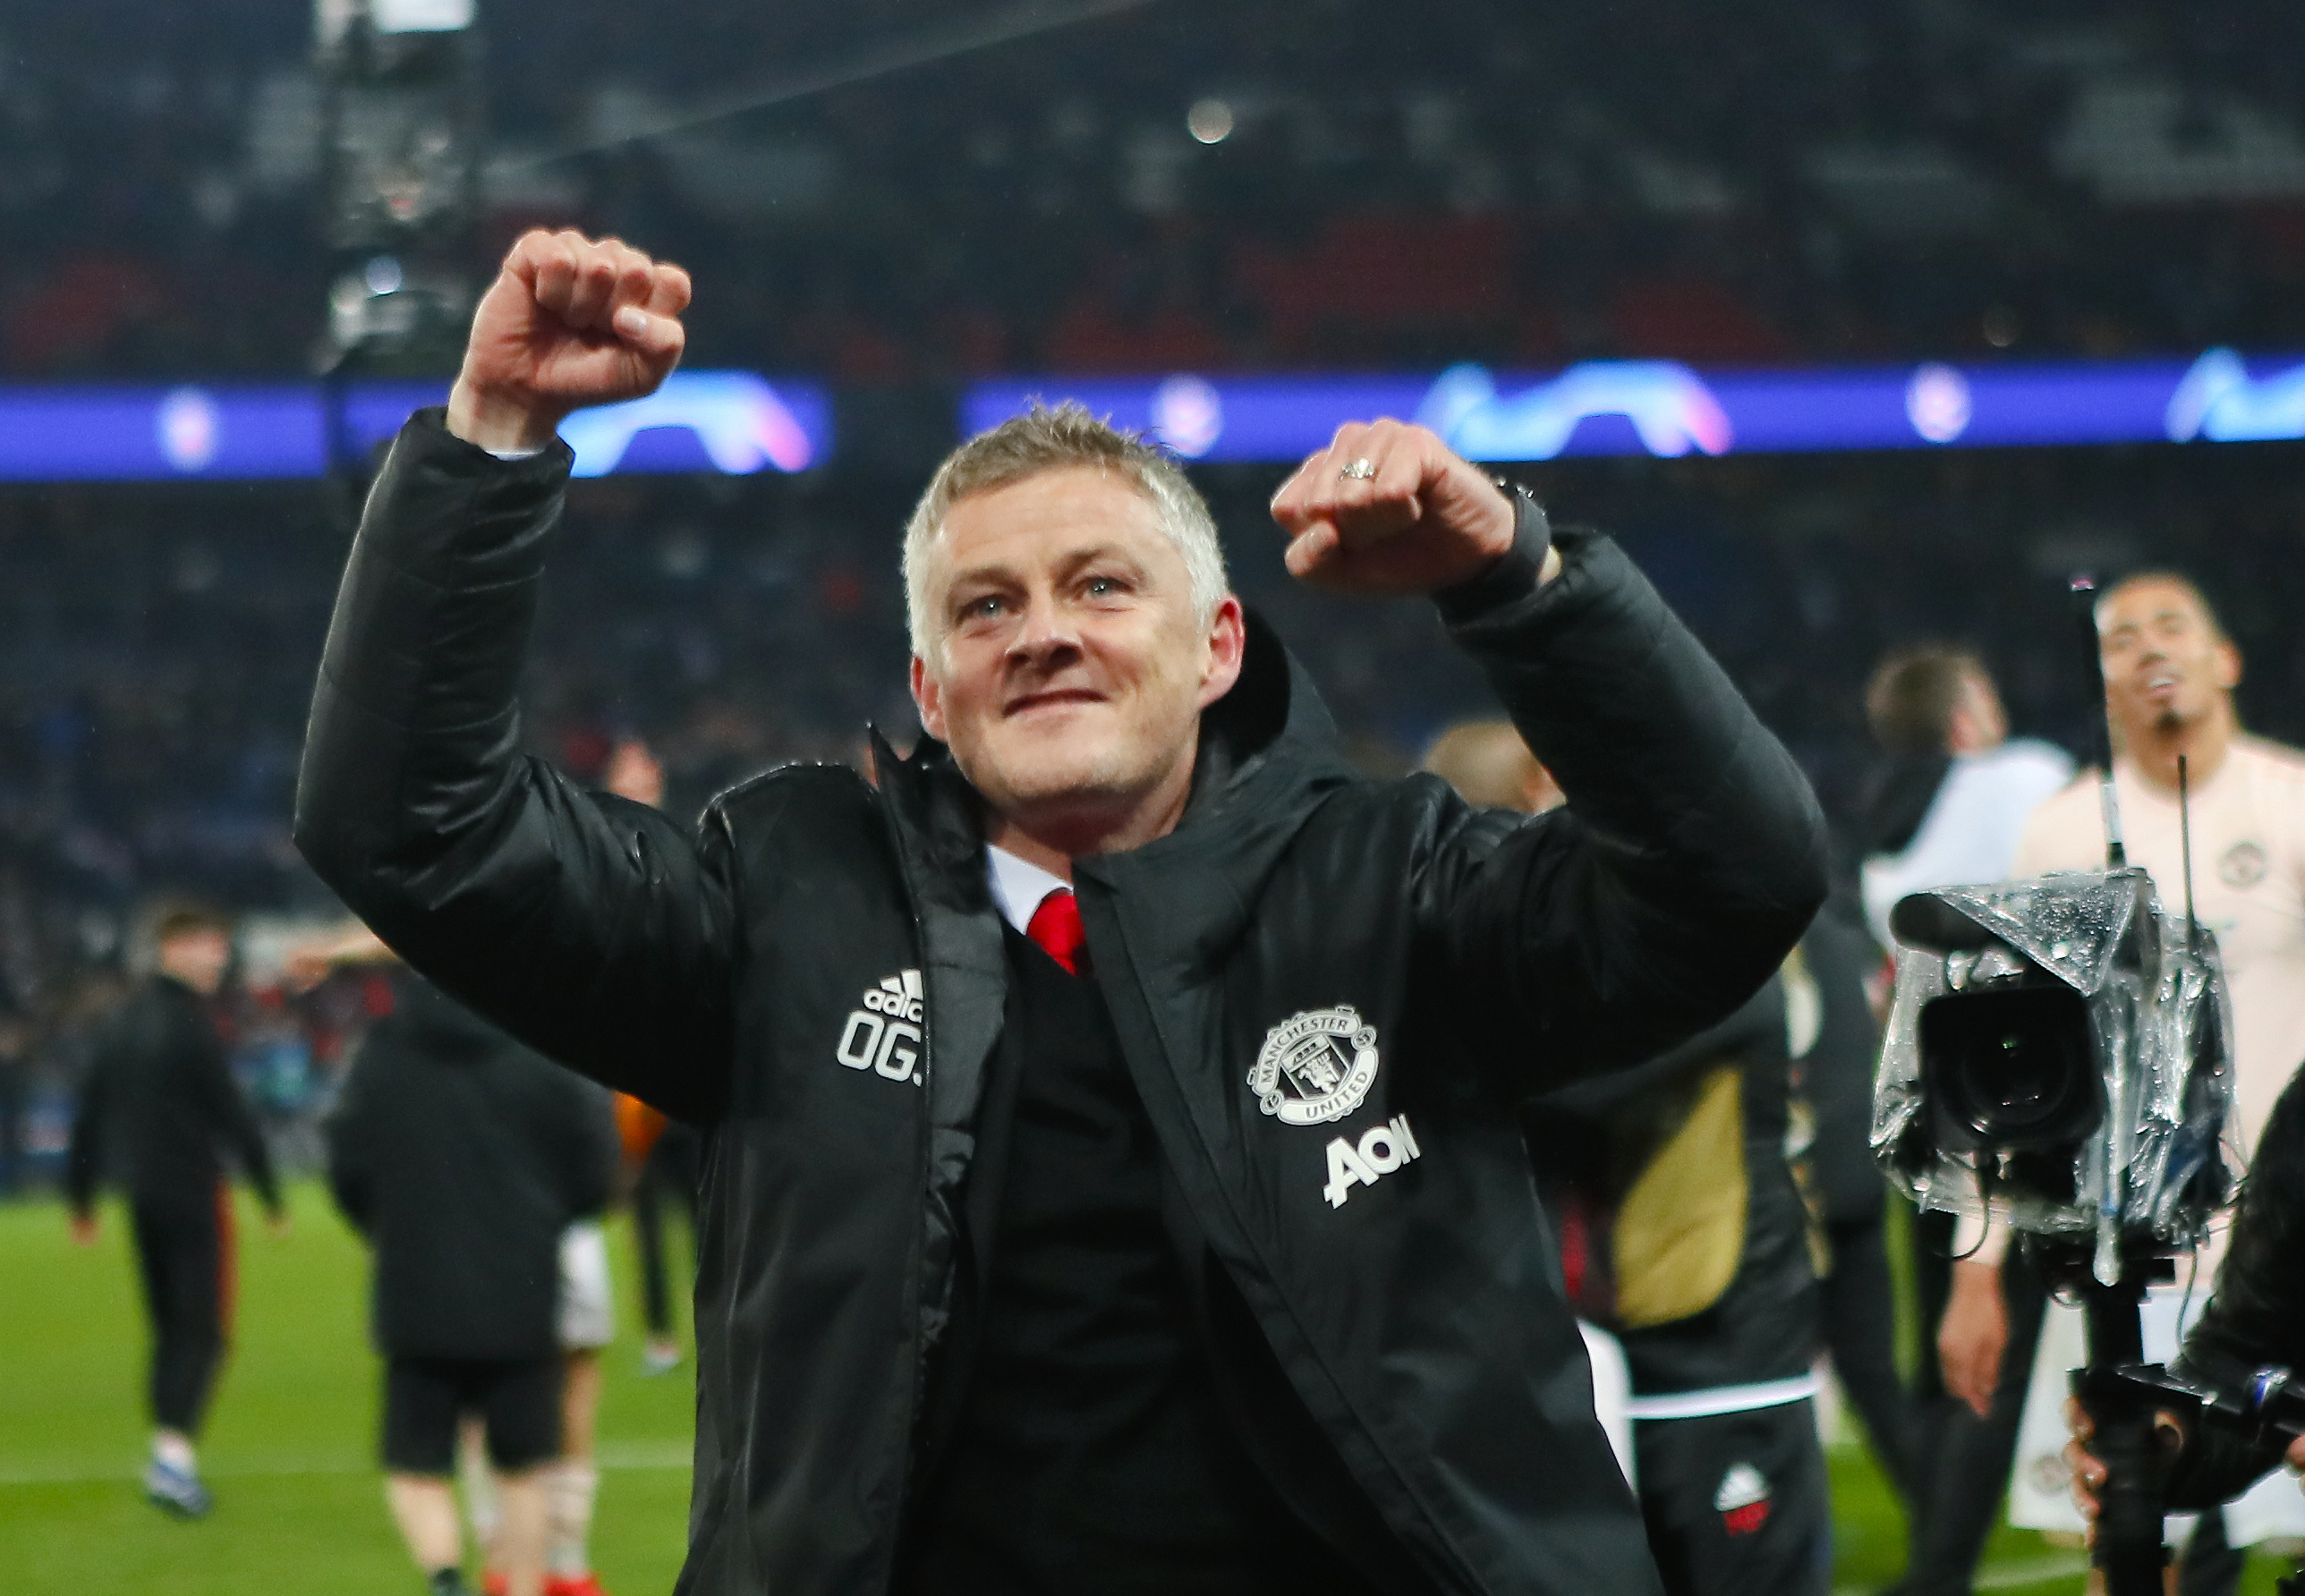 Solskjaer celebrates at full time. Image: PA Images